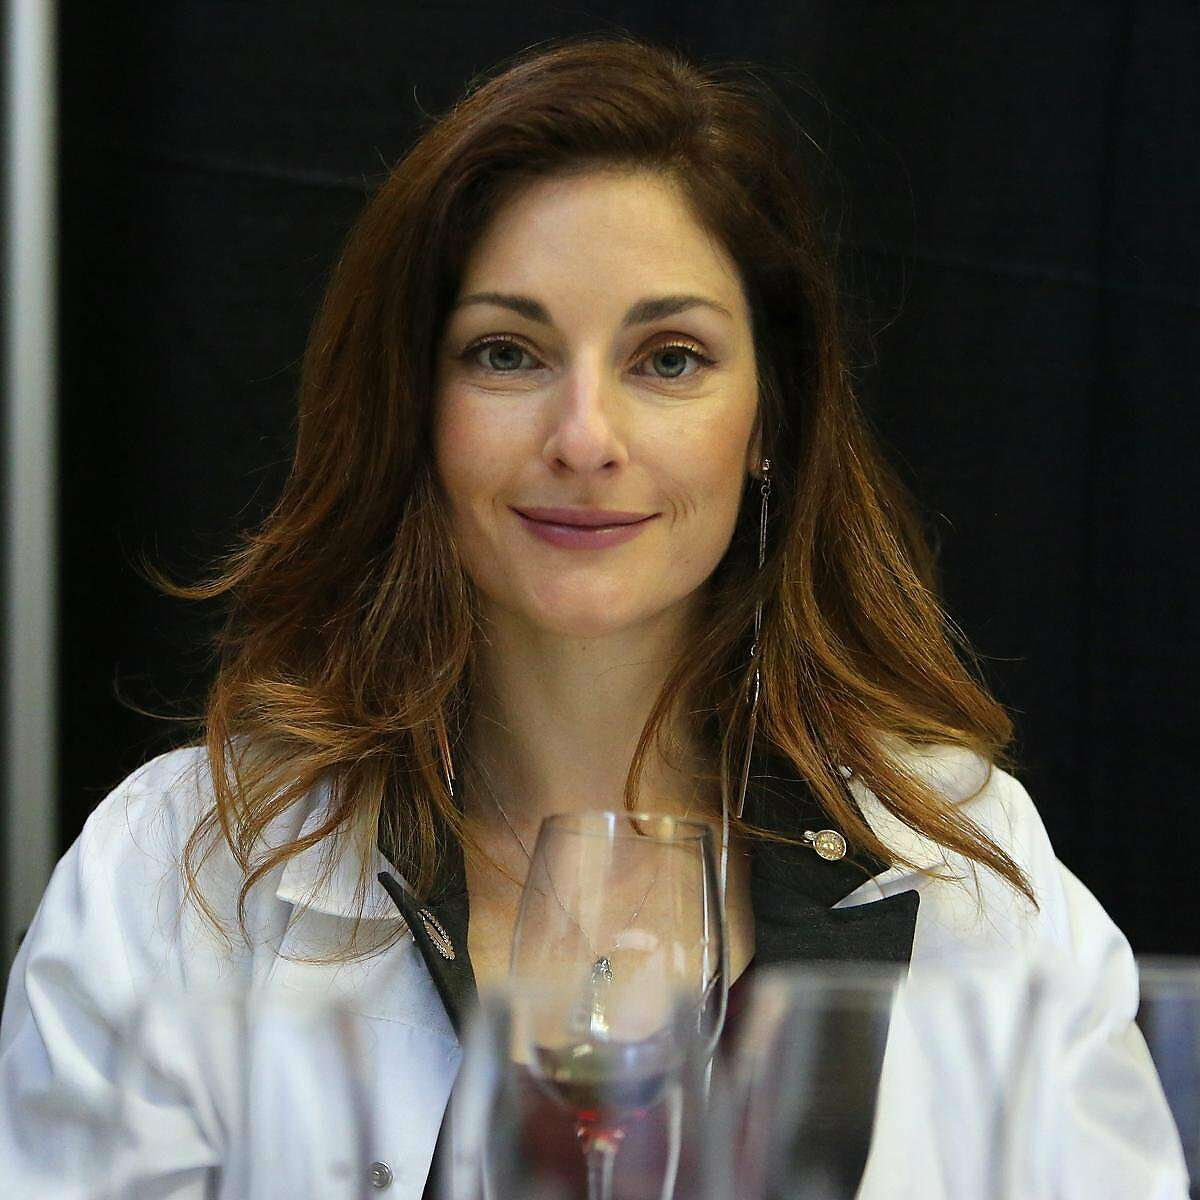 Laura Donadoni, the �Italian Wine Girl,� is a wine journalist and wine educator originally from Bergamo, Italy and now located in Los Angeles, Calif.